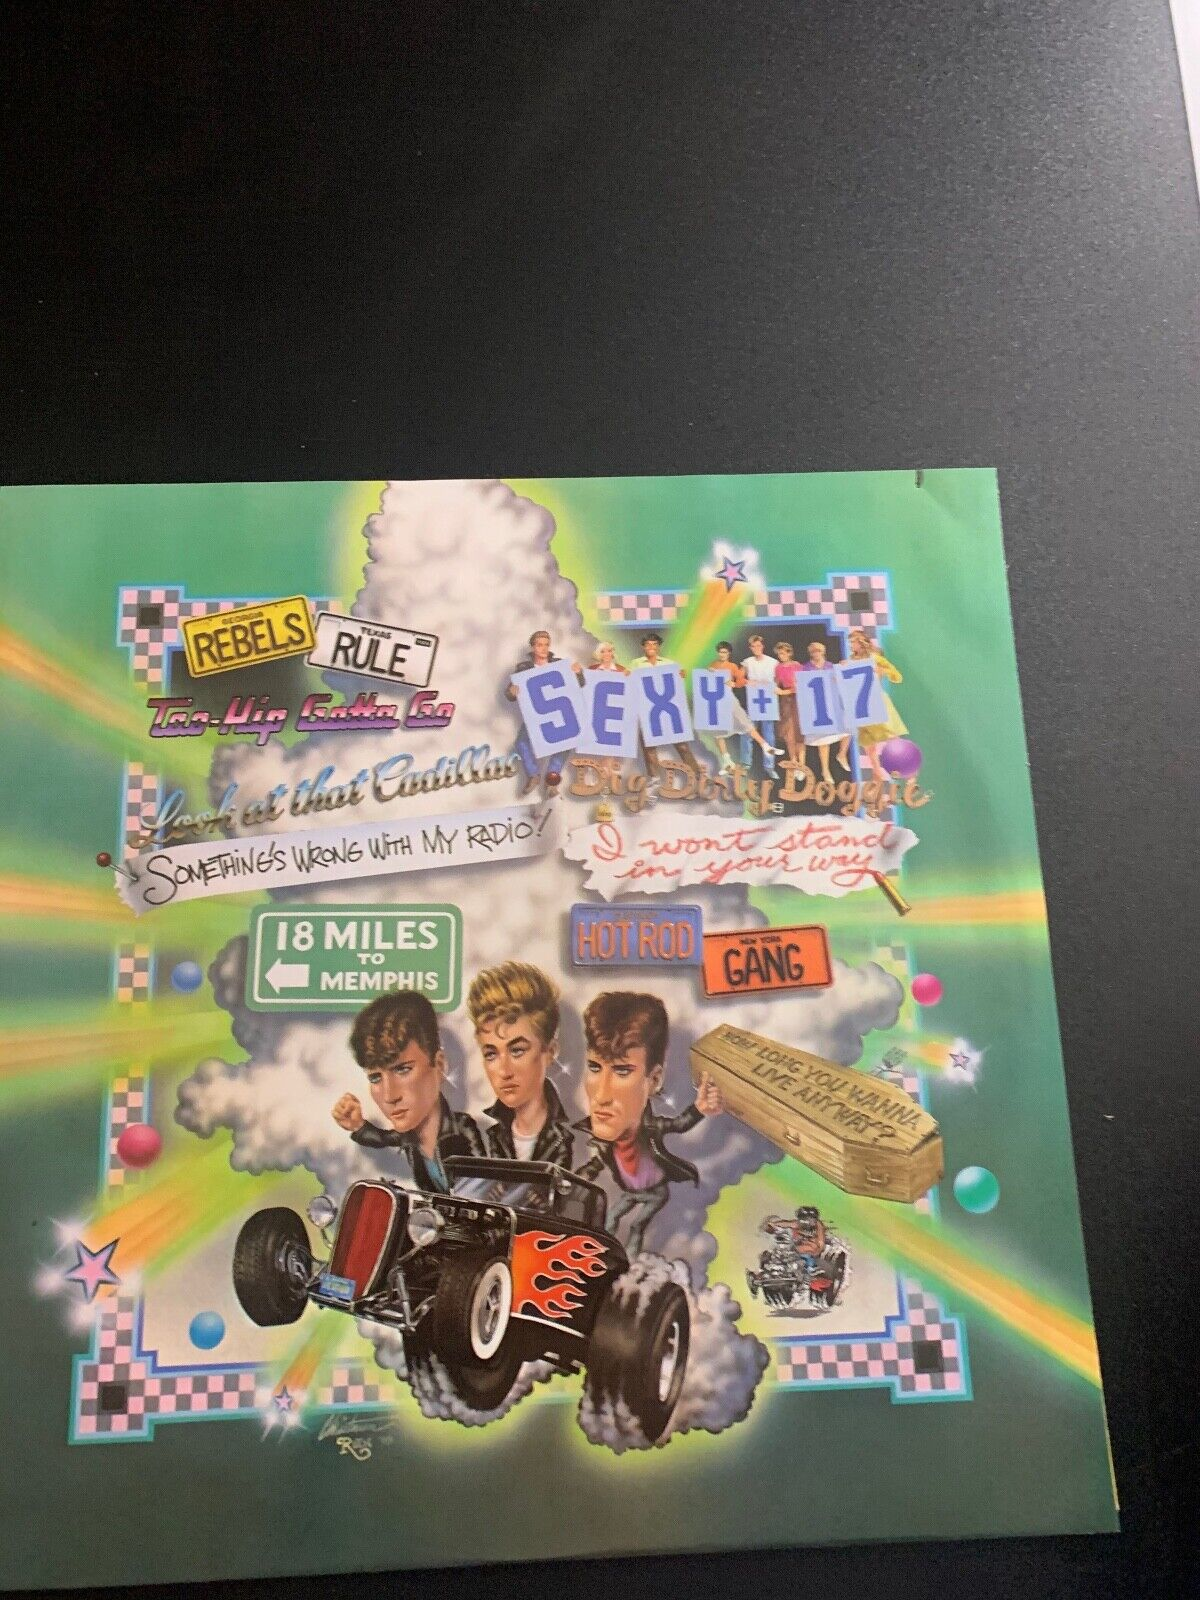 LP RECORD - STRAY CATS - RANT N RAVE - EMI RECORDS - $9.99